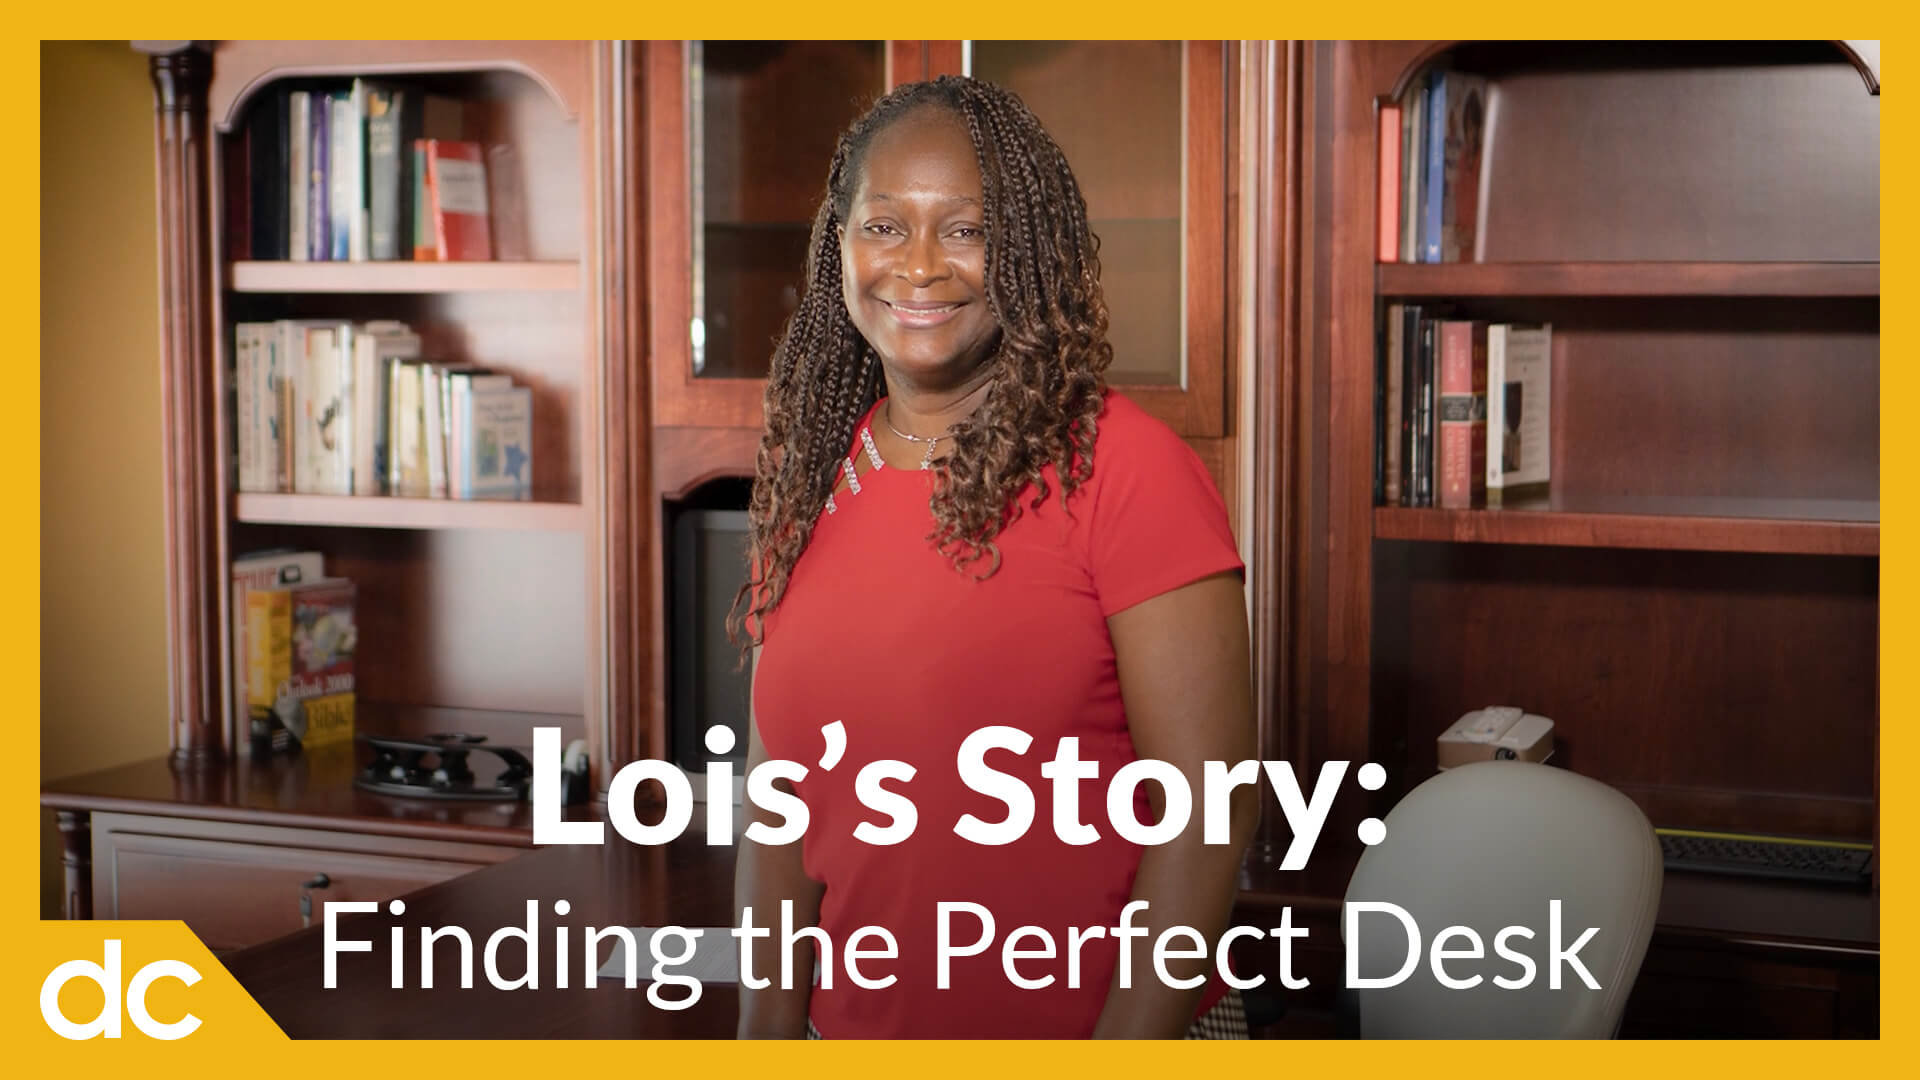 Lois's Story: DutchCrafters Shopping Experience